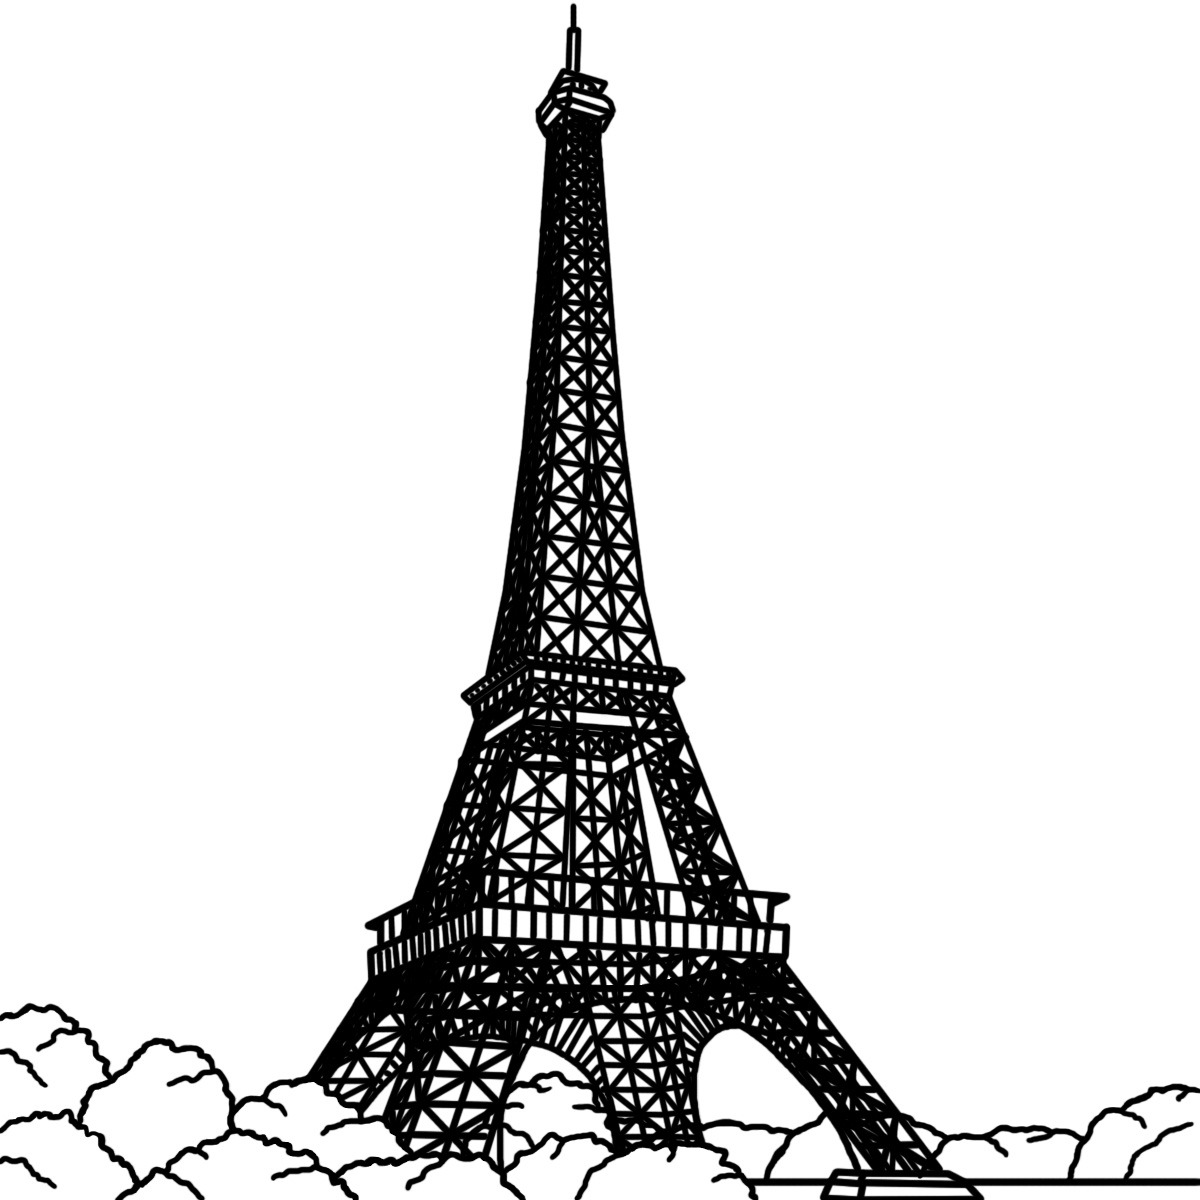 Eiffel Tower clipart #14